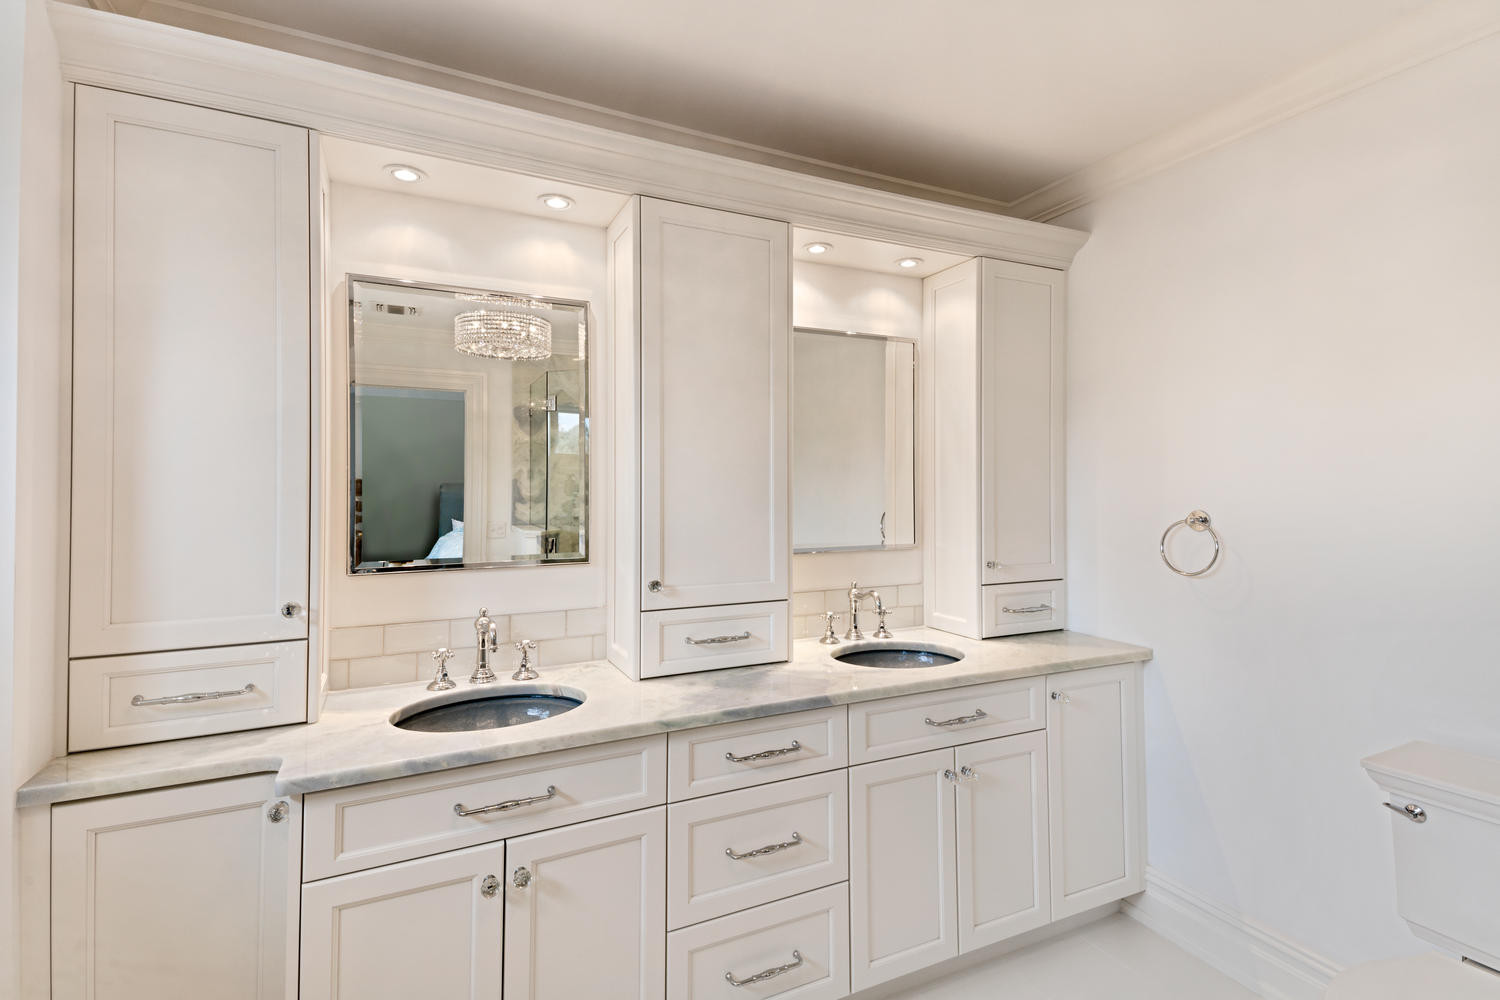 Cabinets To Go Bathroom Vanity  Bath Vanities Monmouth County New Jersey by Design Line